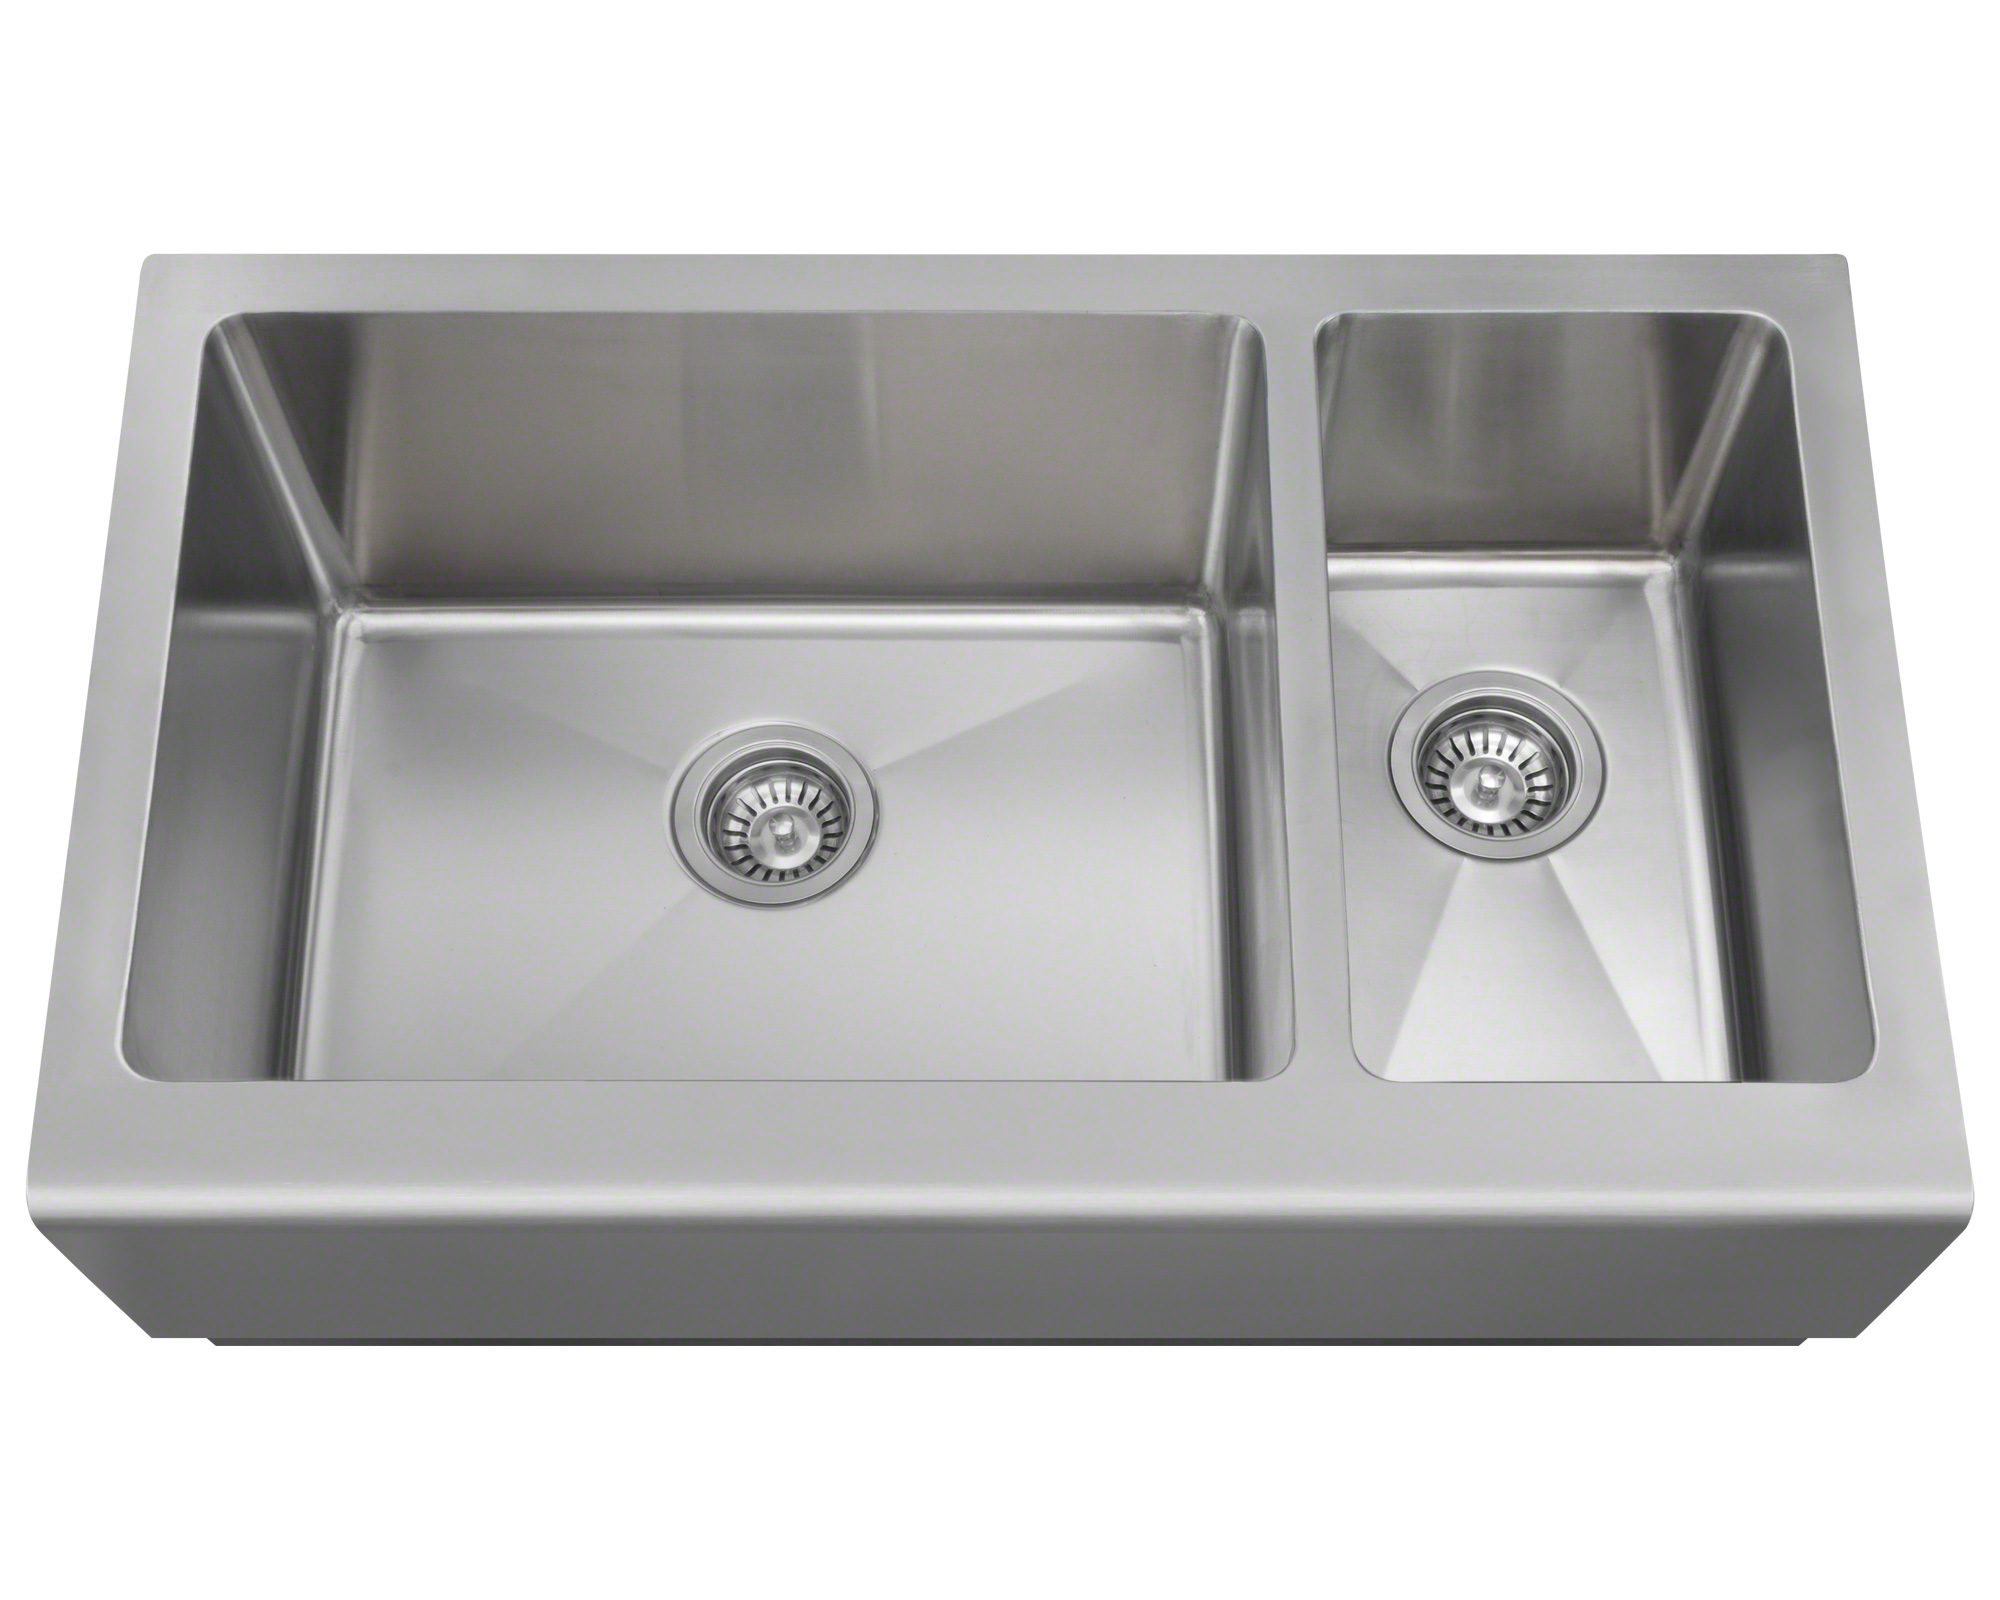 PL704 Offset Apron Sink